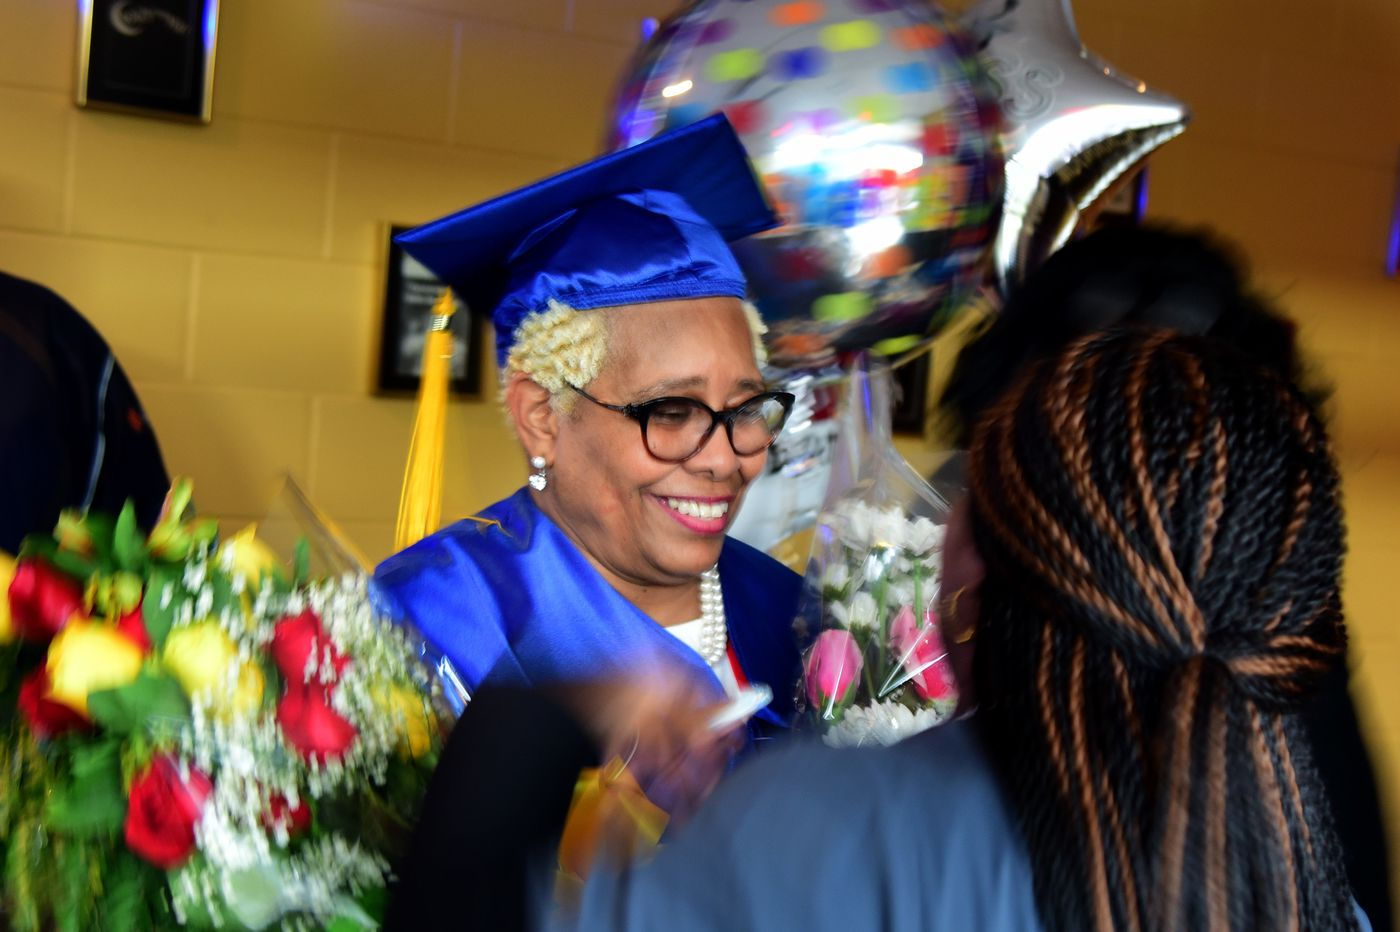 After 21 years of trying, Philly native earns GED from South Jersey community college